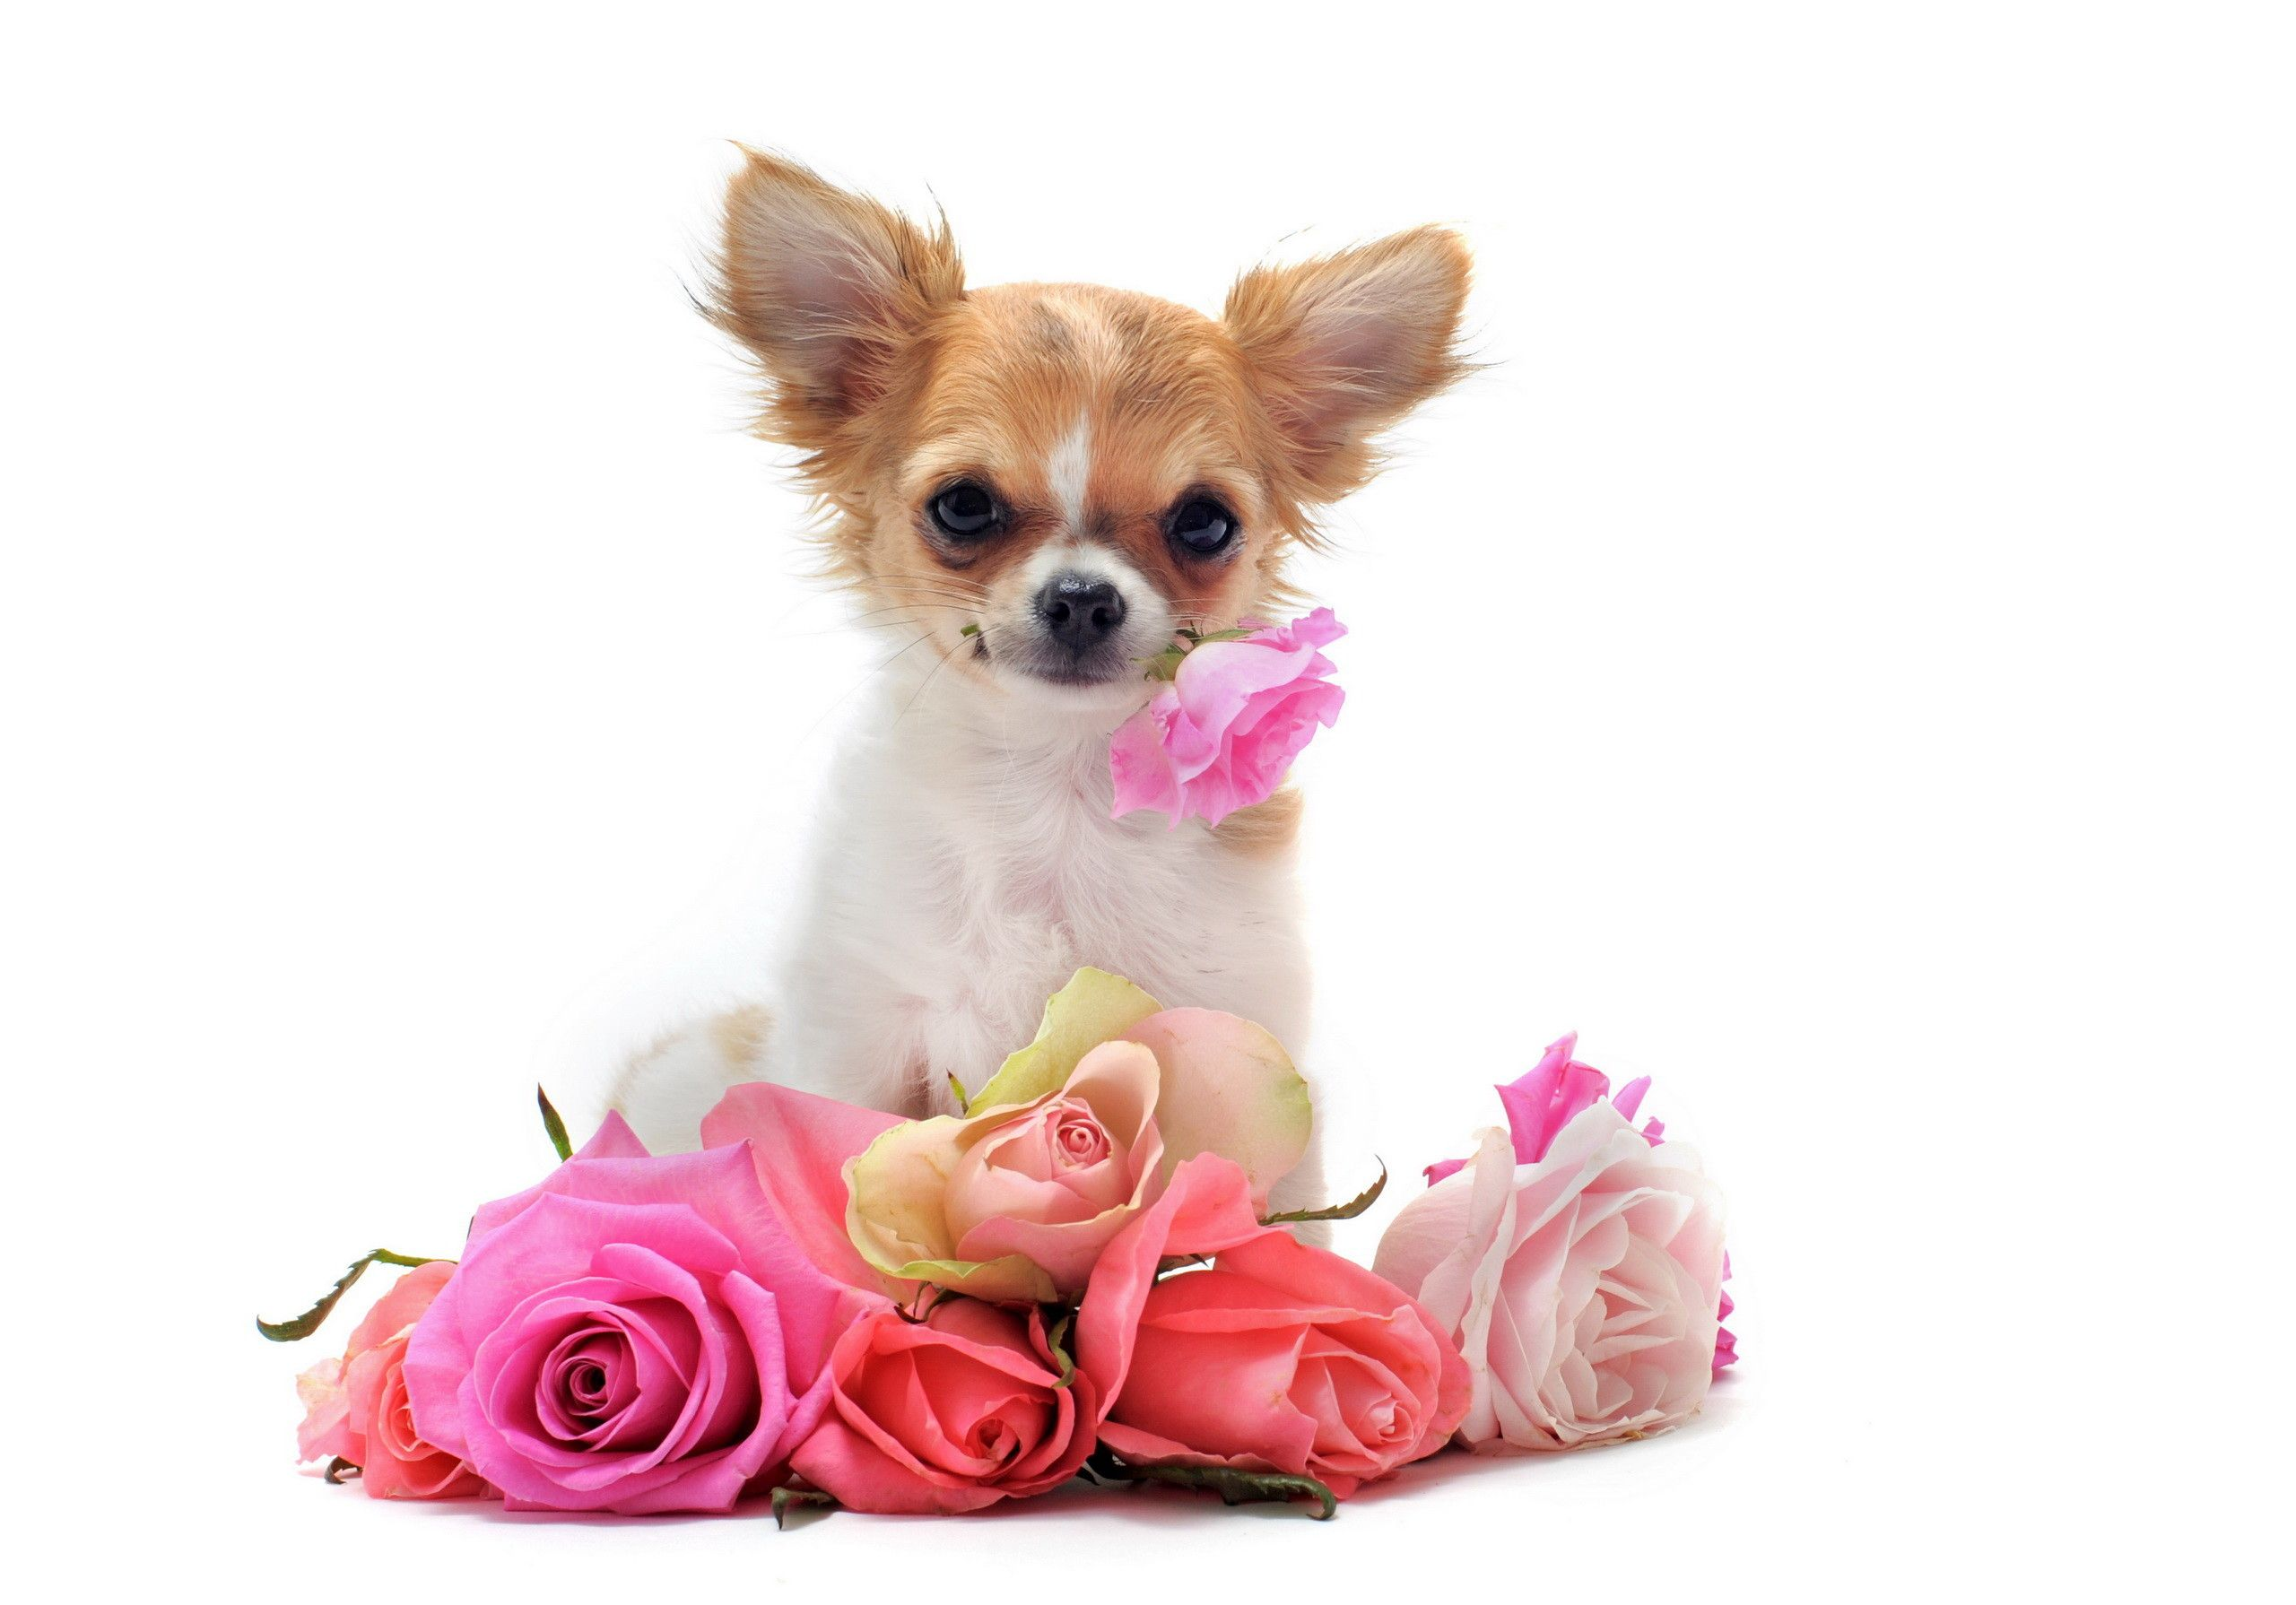 Cute Chihuahua Dogs Wallpapers - Top